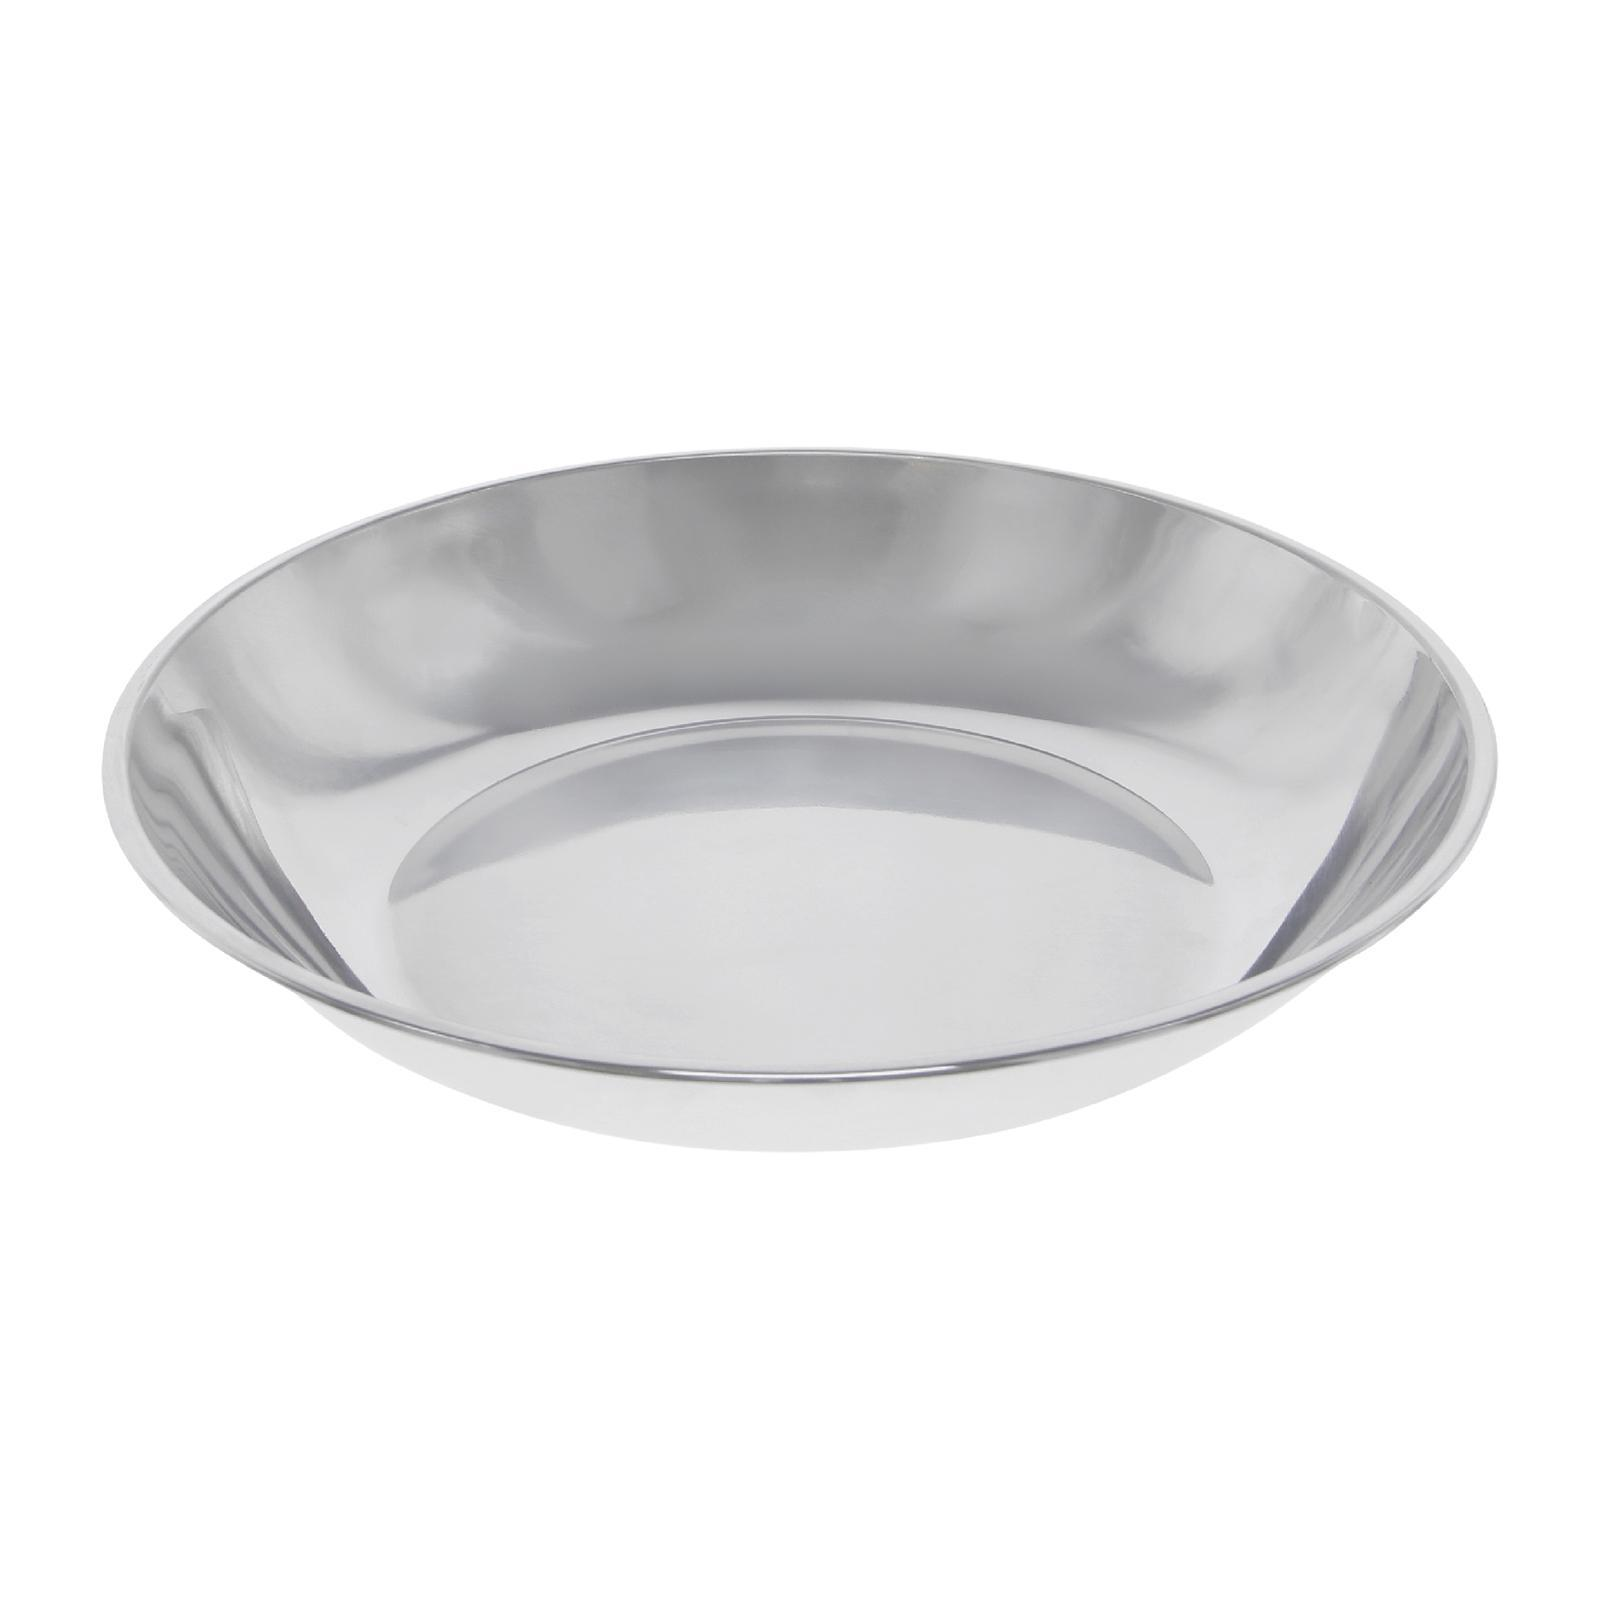 555 Stainless Steel Rice Plate 24 CM